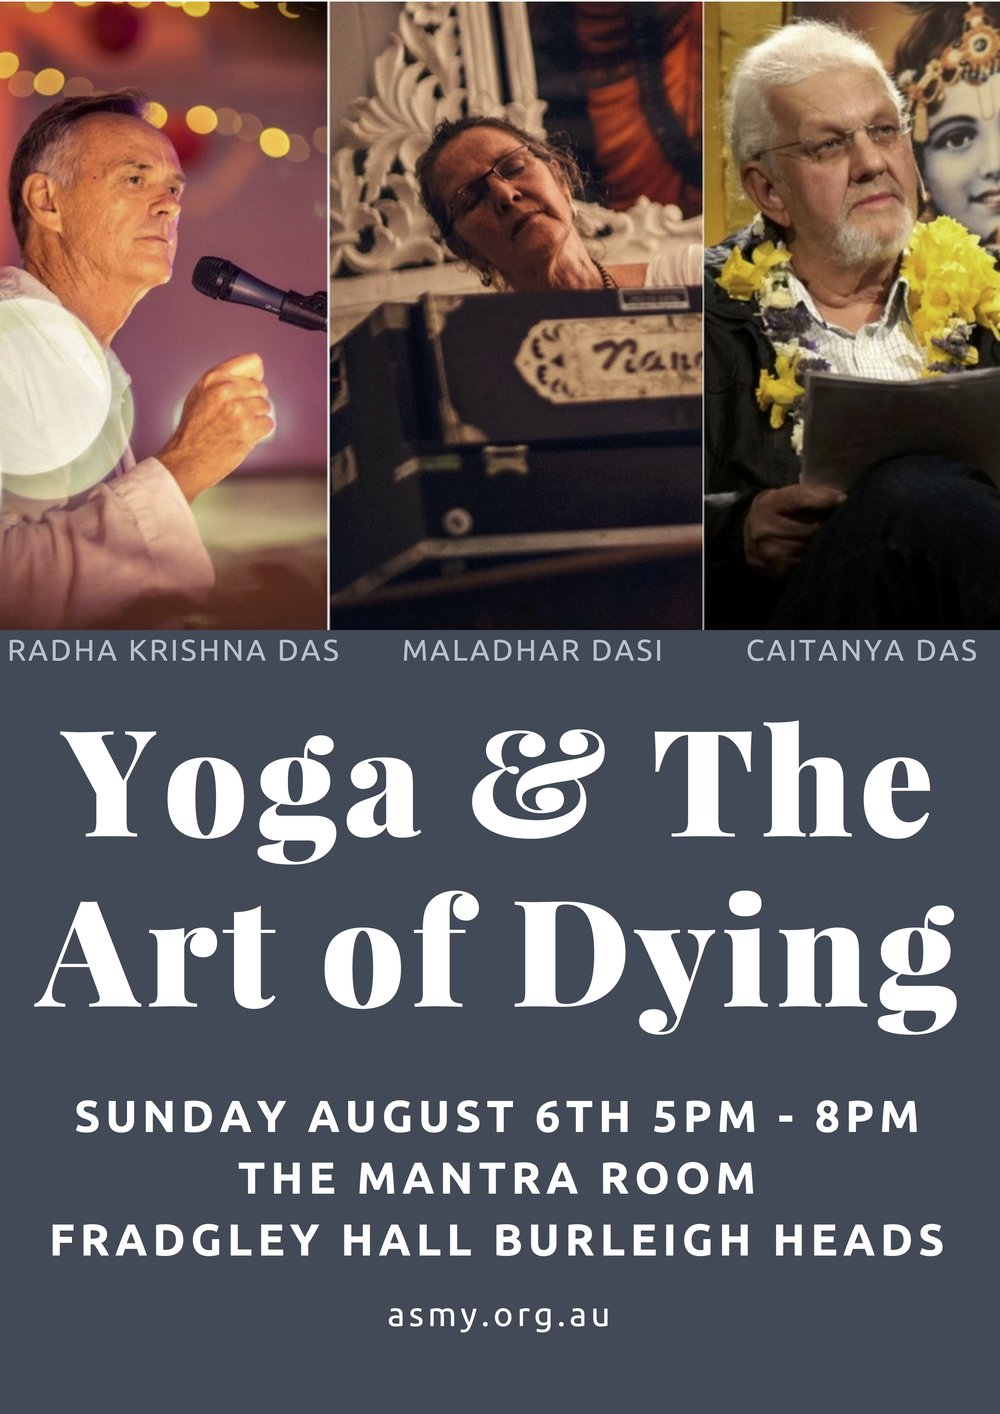 Yoga & The Art of Dying Poster.jpg